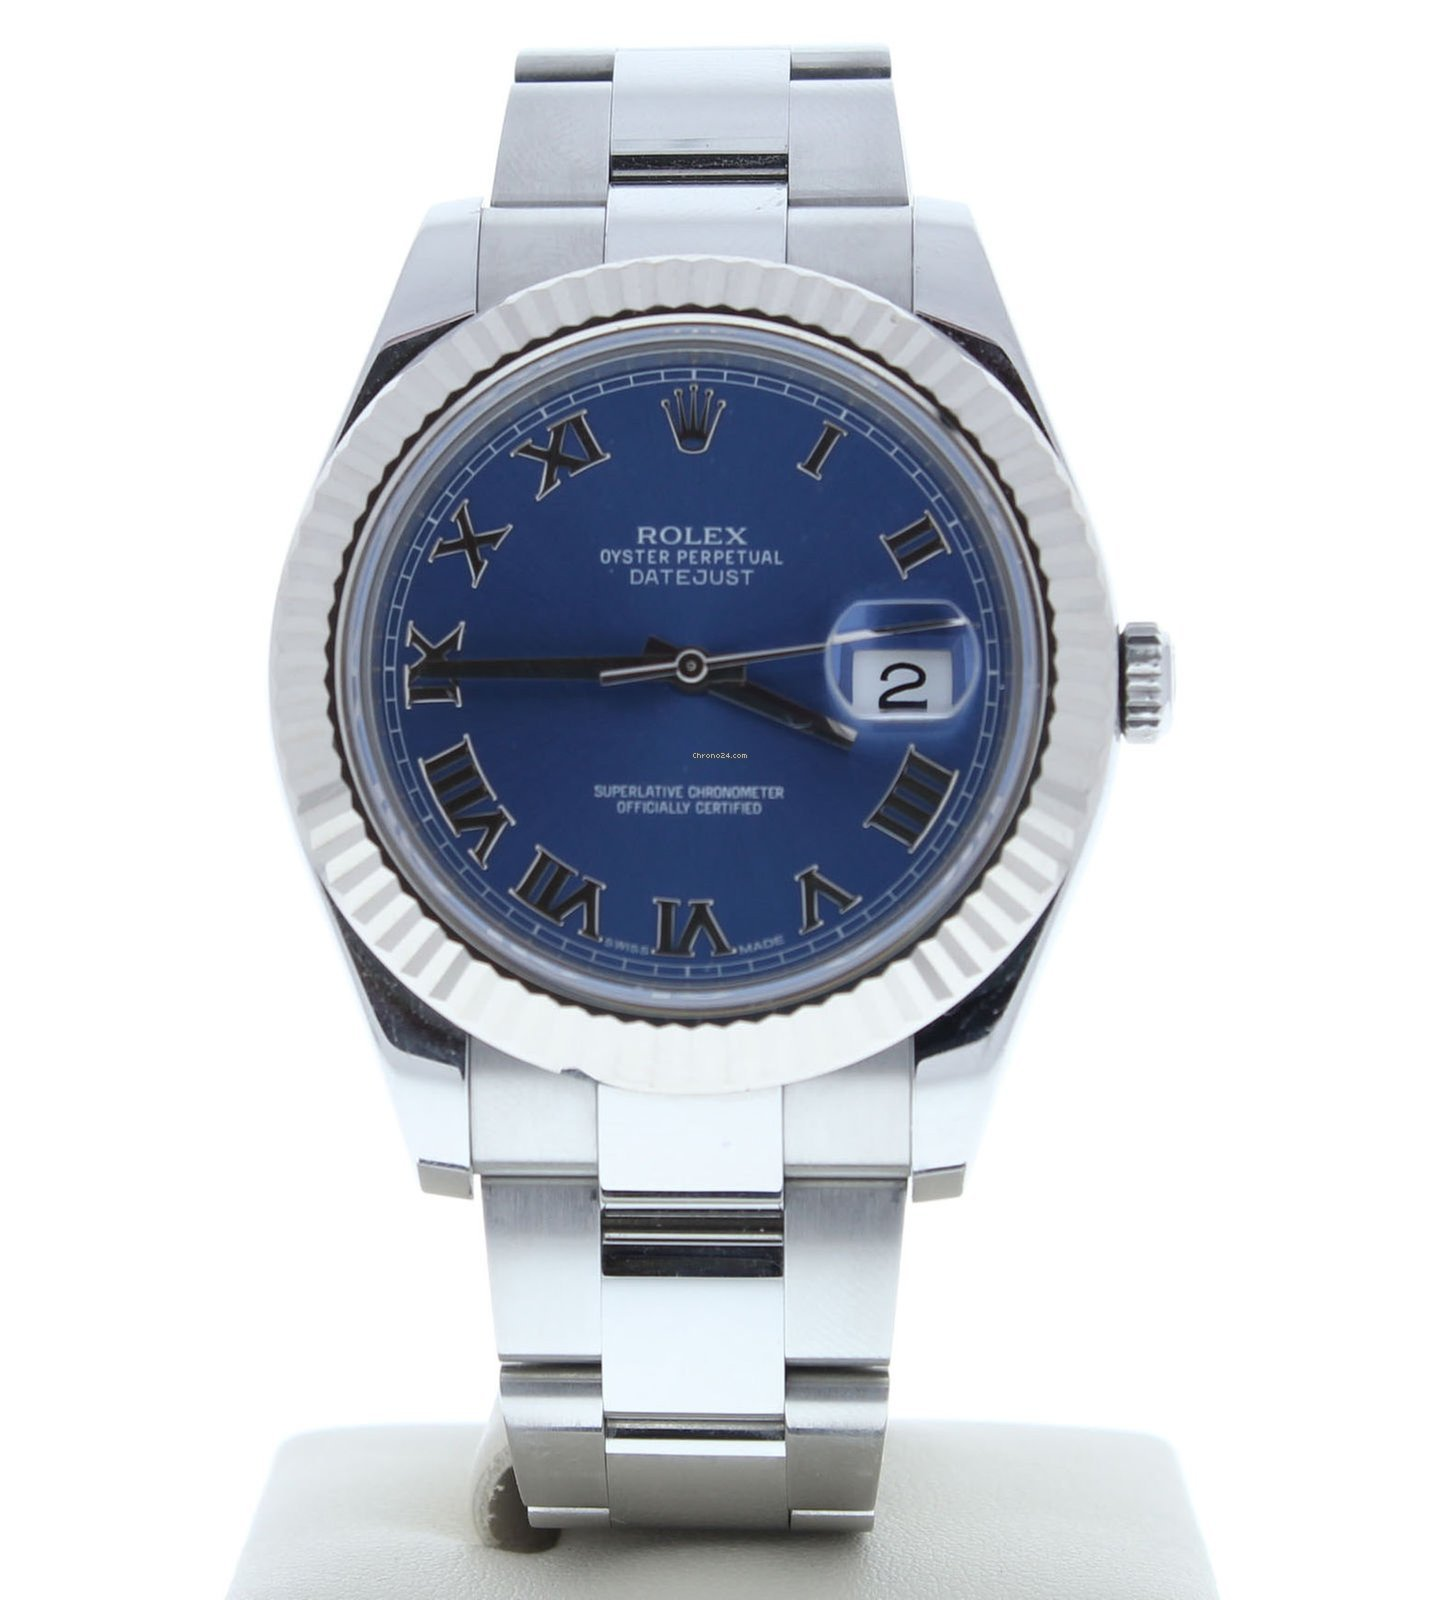 a9d4eb0e44a Rolex Datejust II 116334 Discontinued Watch Blue Roman Dial &... for Rs.  600,650 for sale from a Trusted Seller on Chrono24